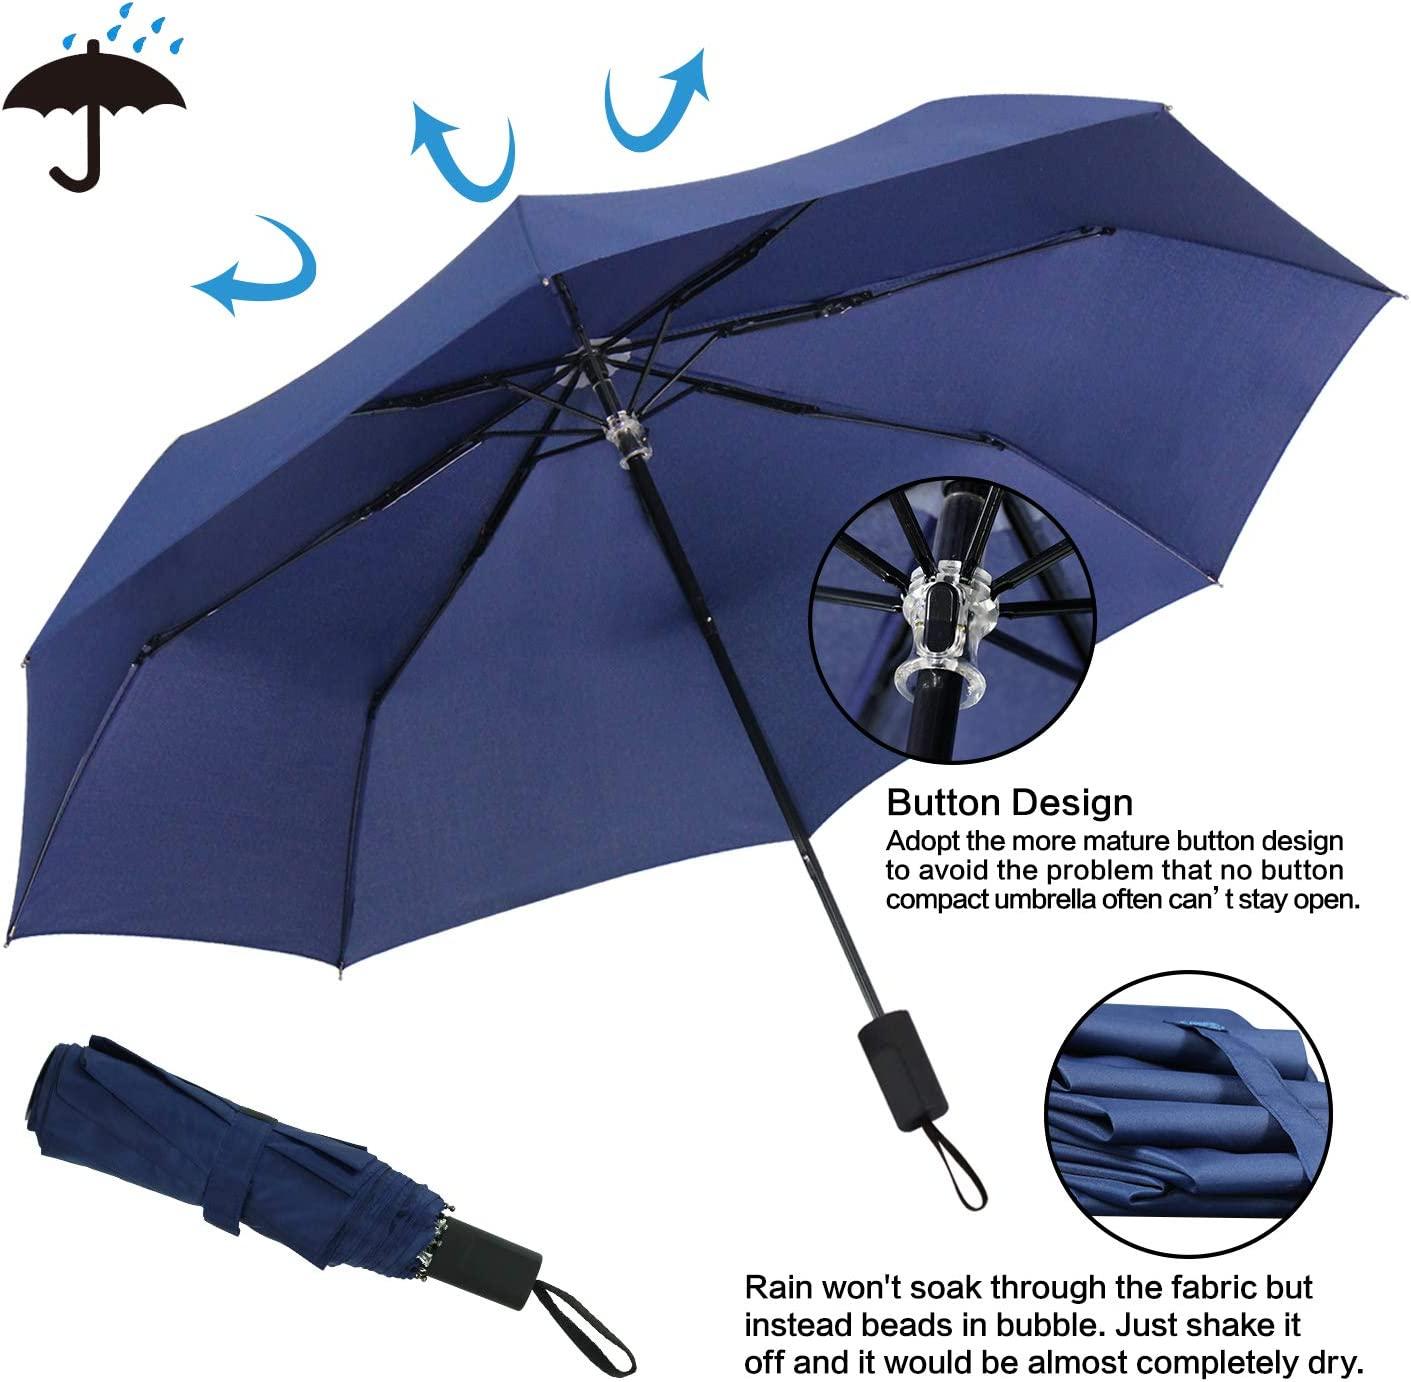 Ladies 42 Inches Automatic Opening and Closing,Gold Star Trophy Against Blue Background,Windproof Rainproof 10 Ribs Men RLDSESS Star Travel Folding Umbrella